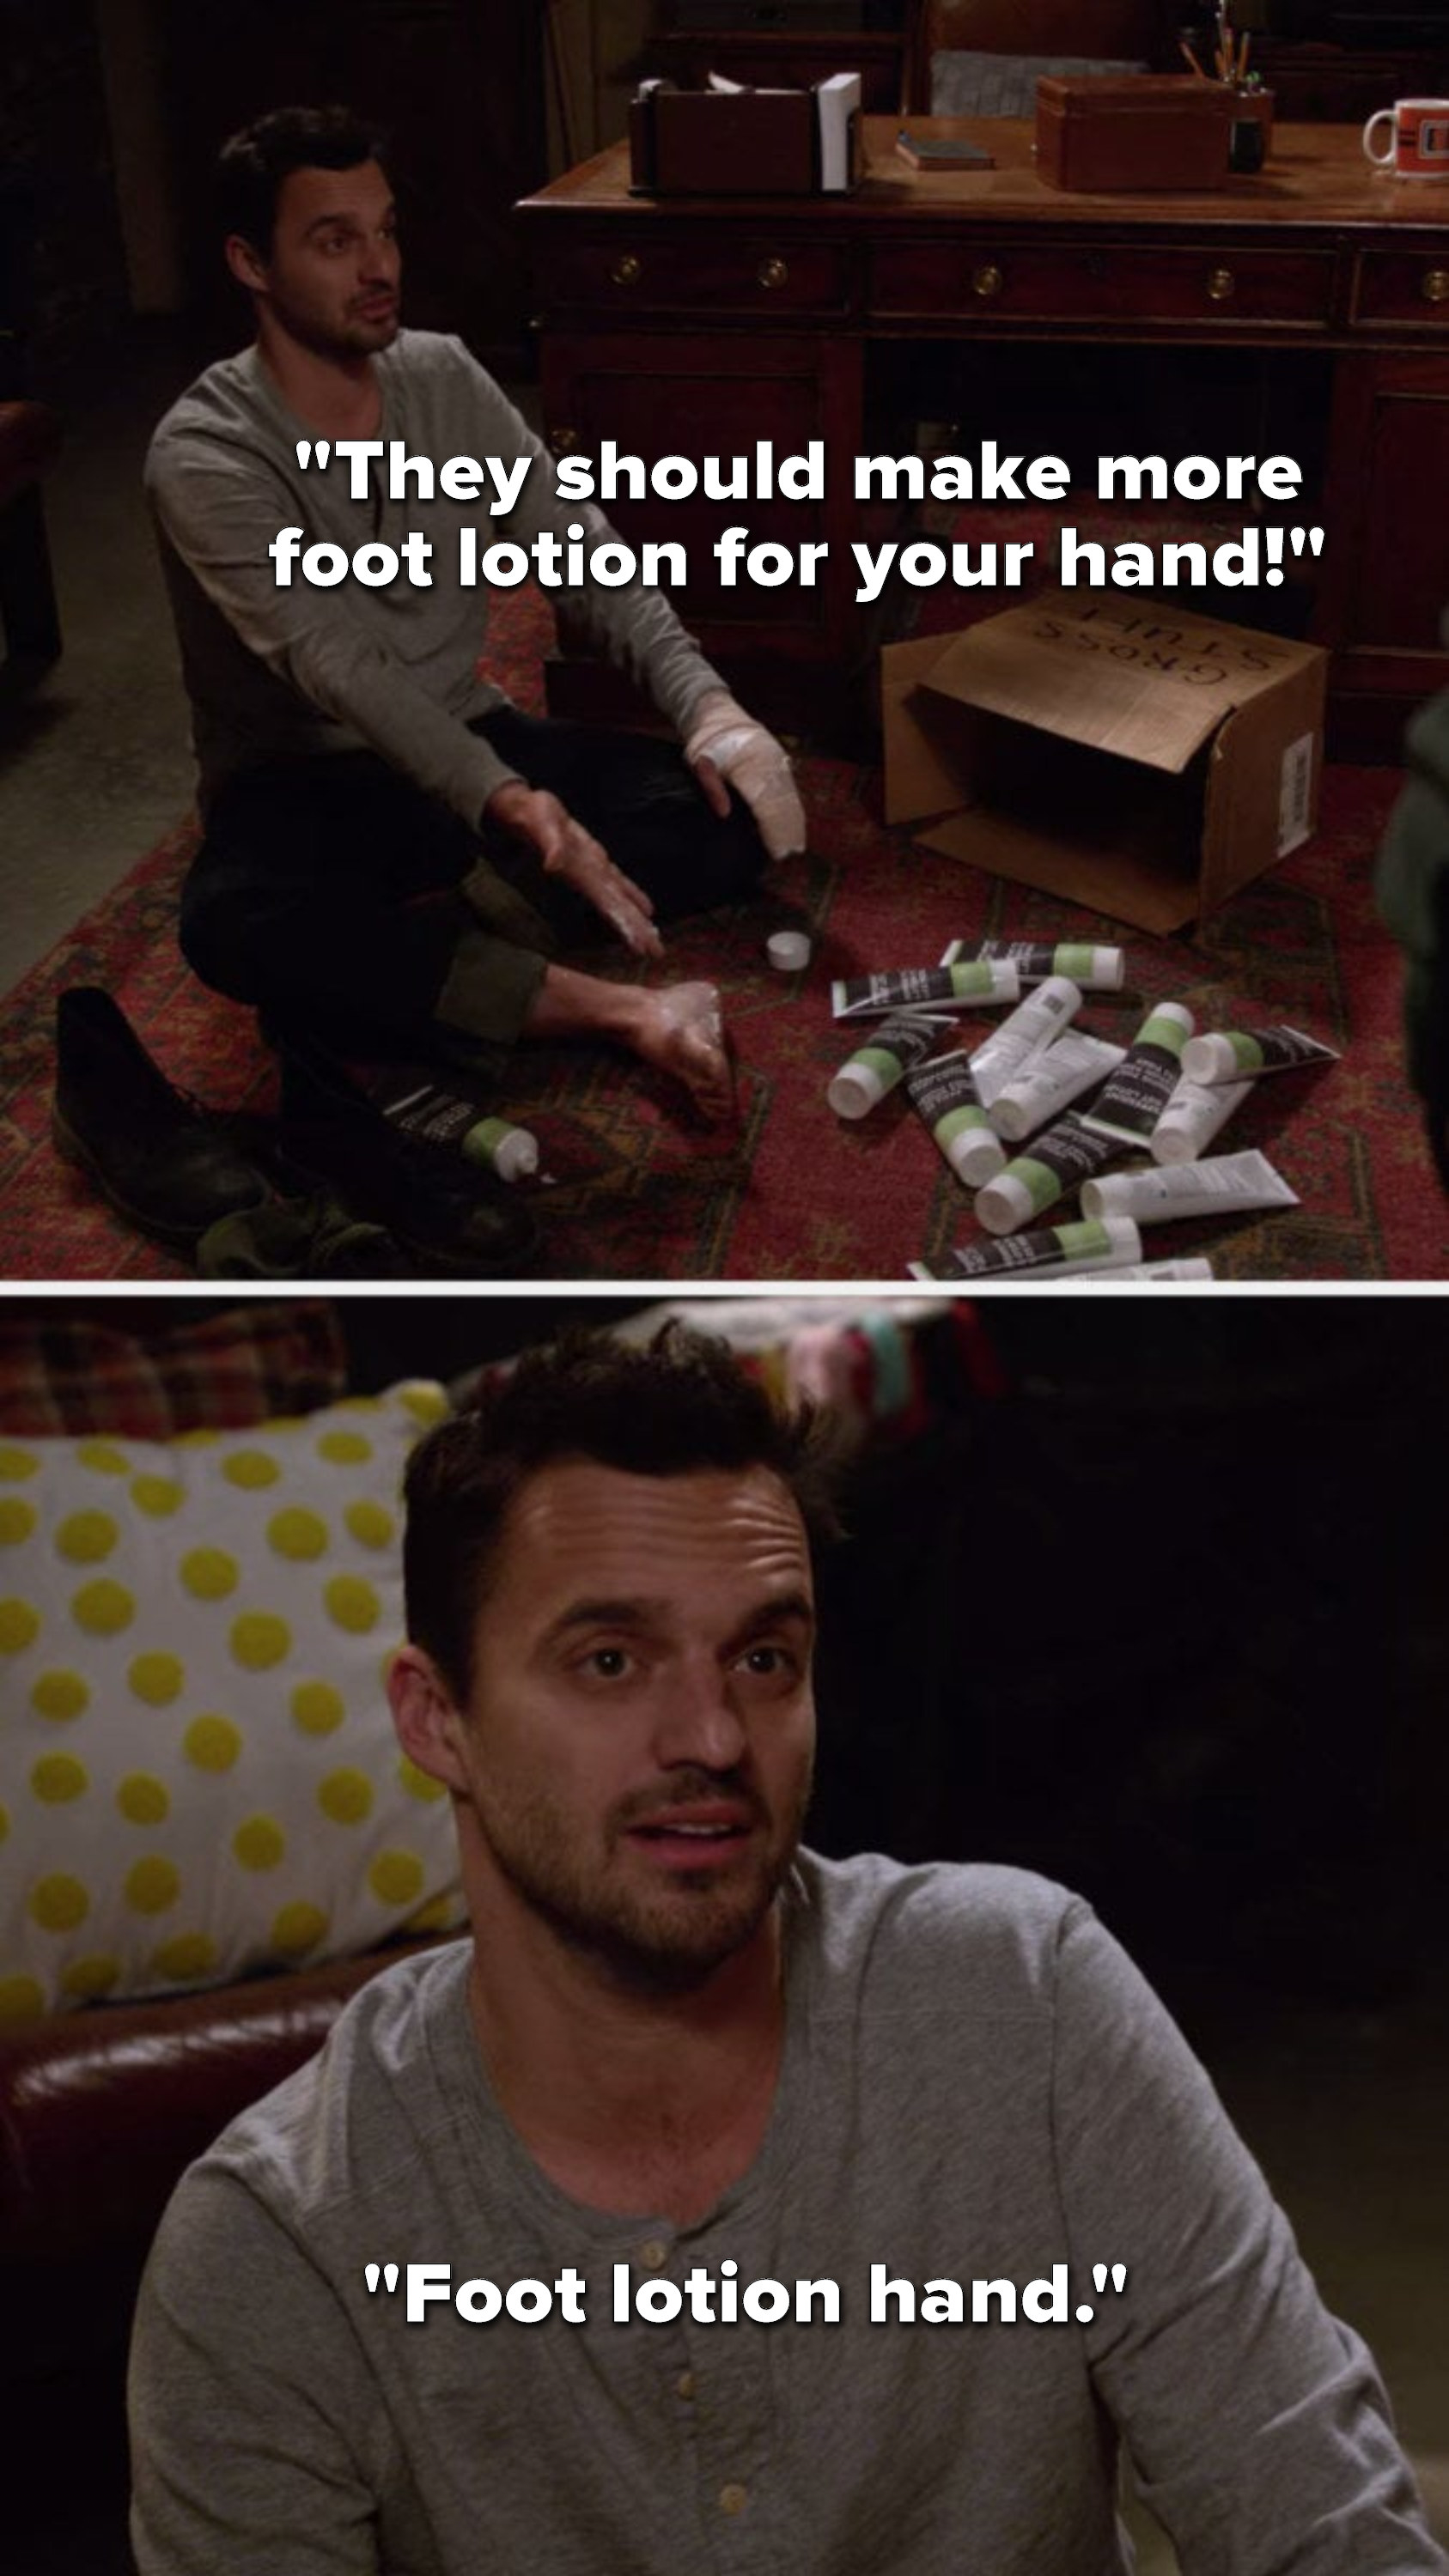 Nick says, They should make more foot lotion for your hand, foot lotion hand